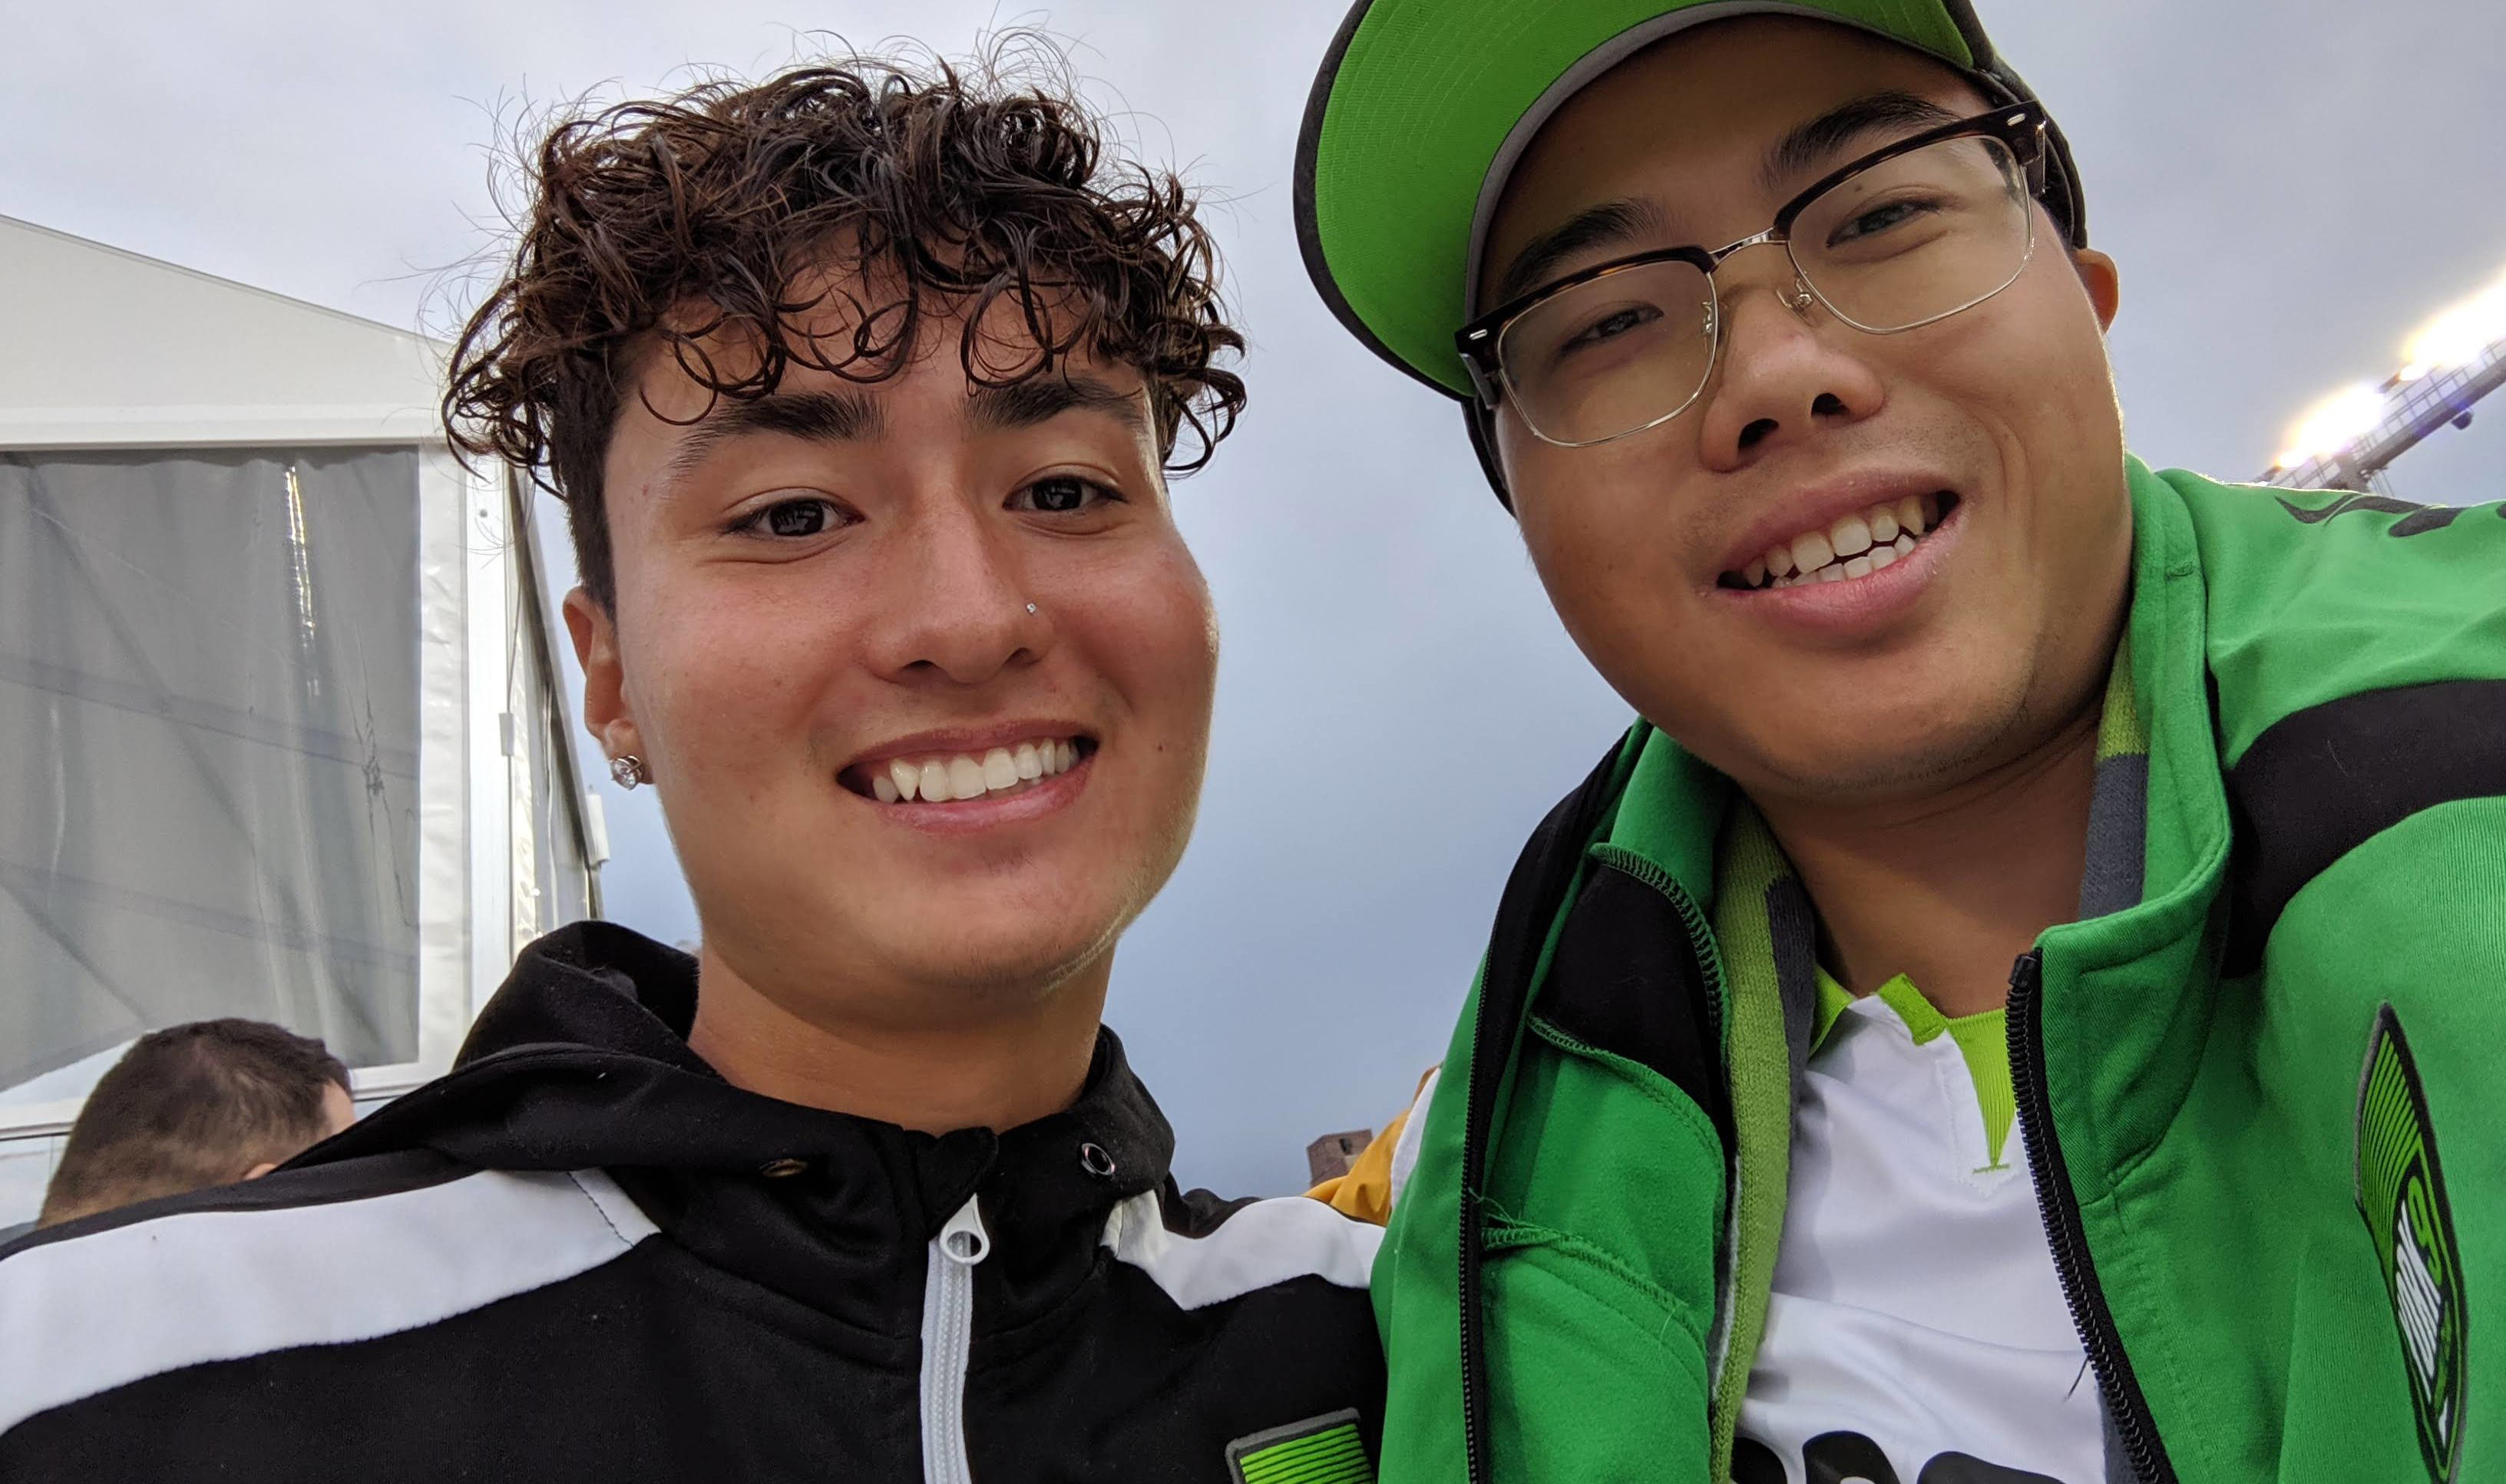 Edward Hon-Sing Wong, right, alongside York9 FC midfielder Emilio Estevez.